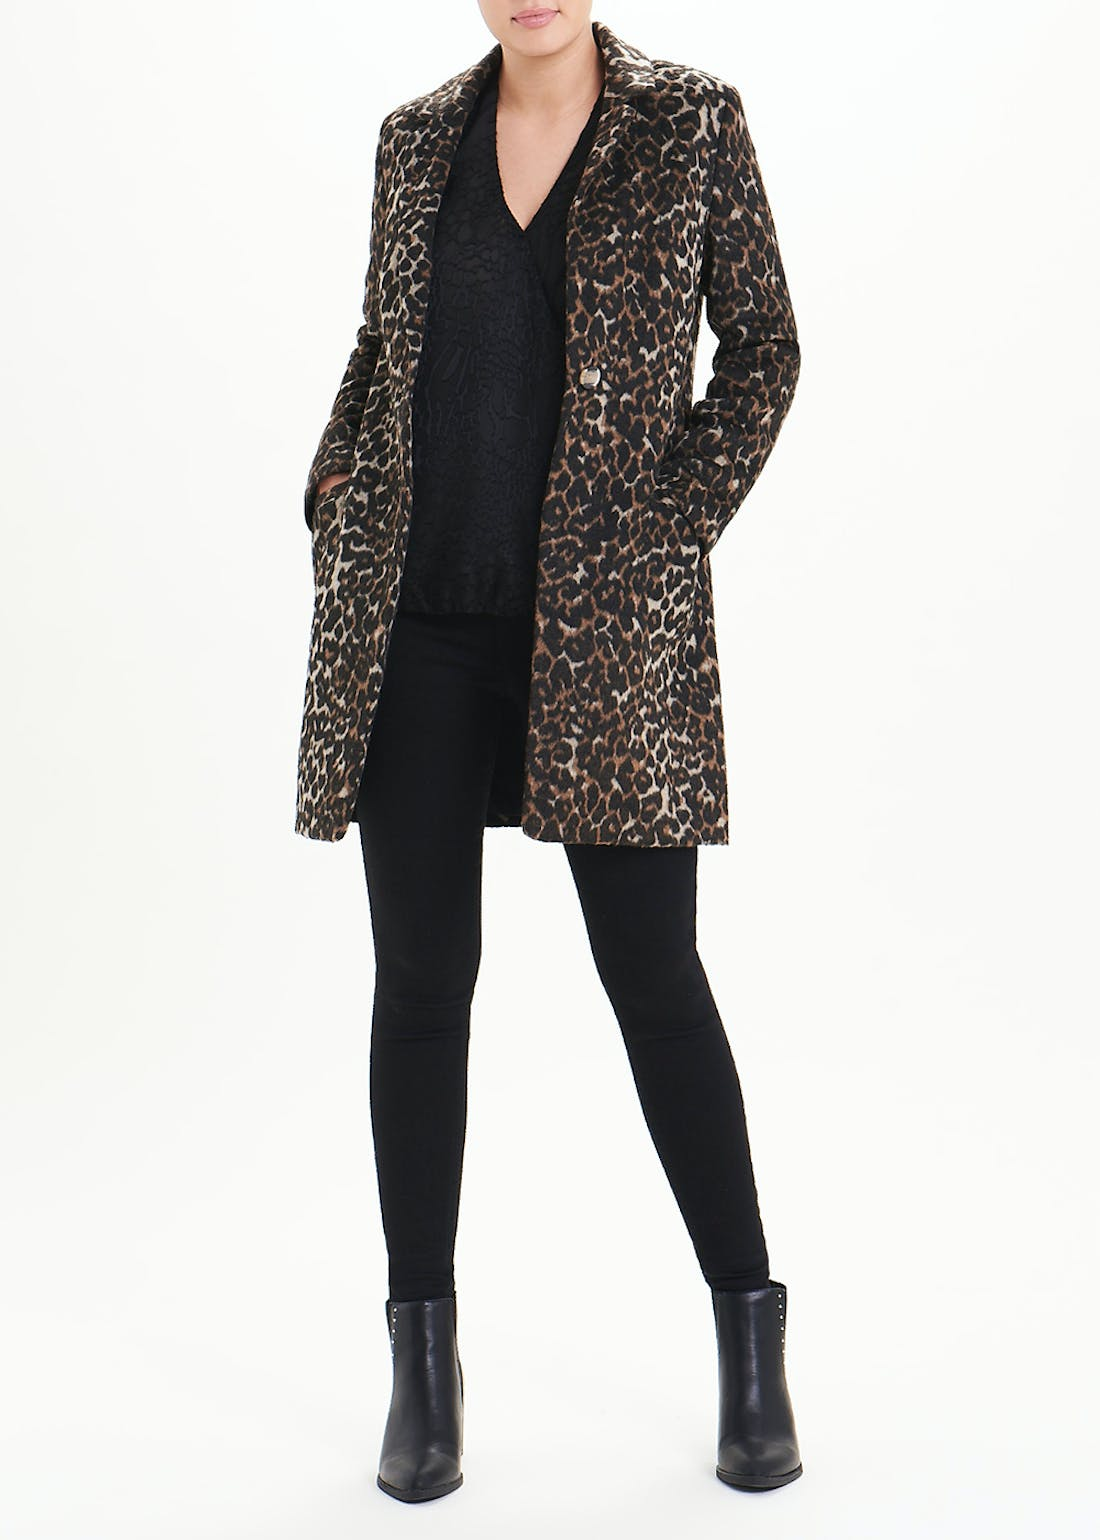 Soon Animal Print Formal Coat